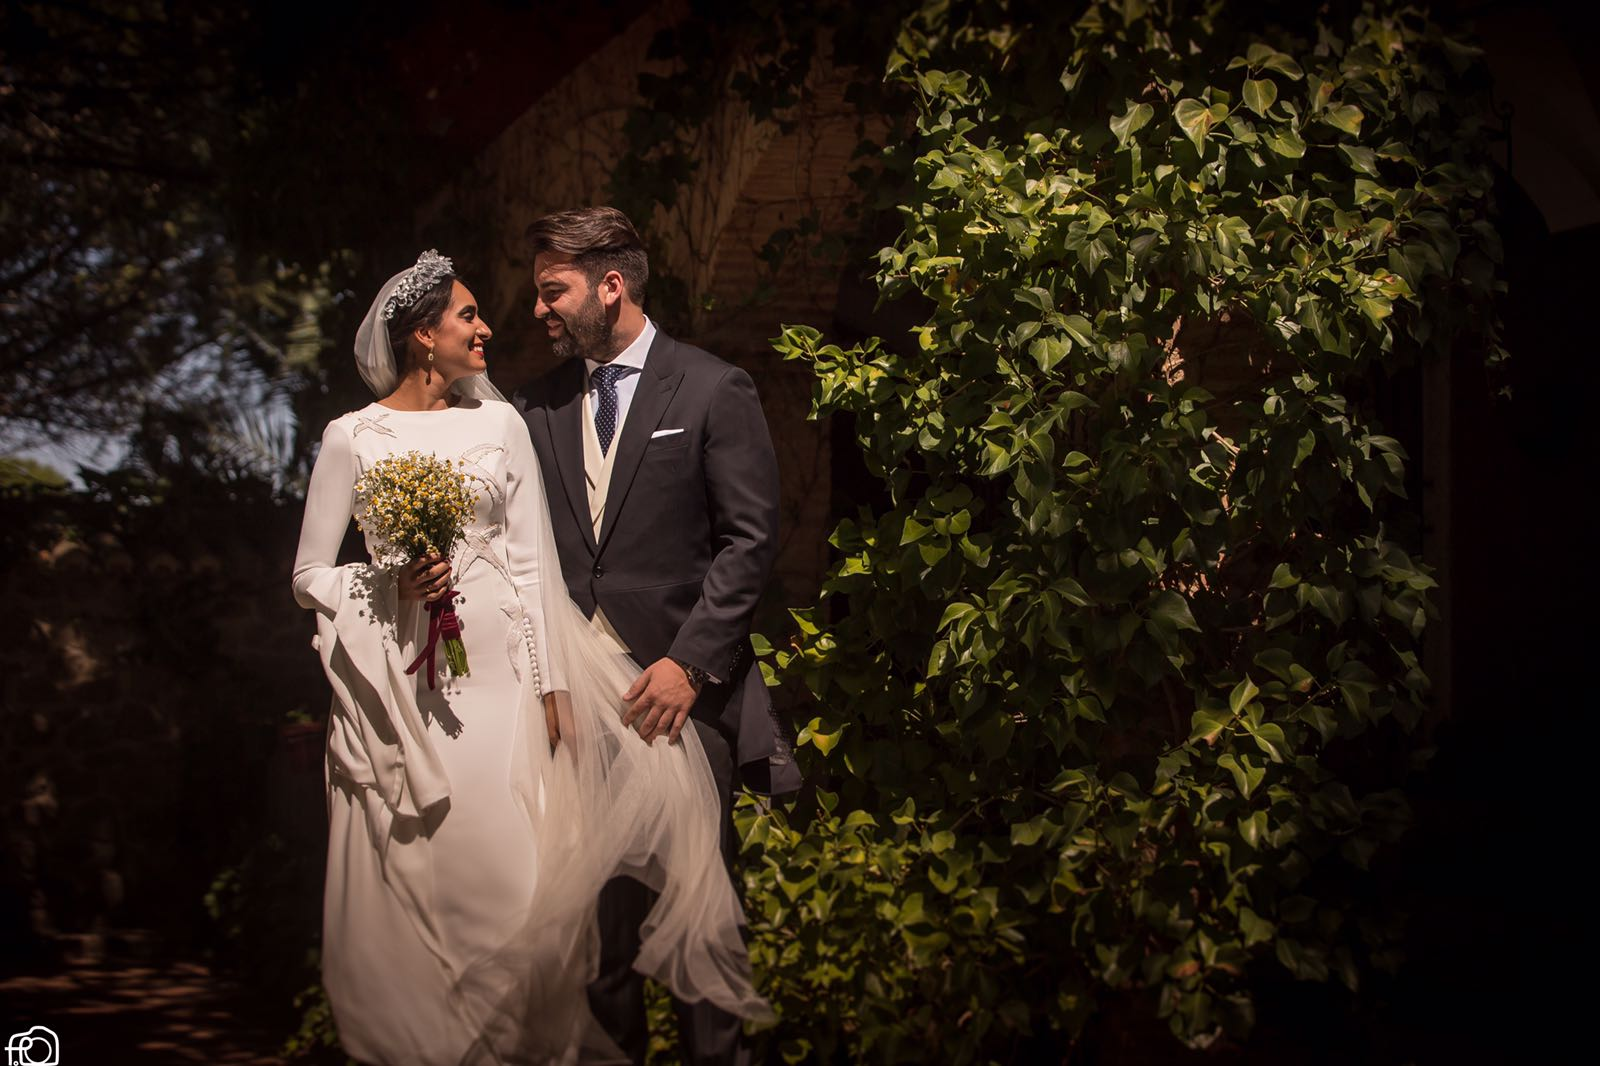 descubre en el blog de bodas wedding ideas wedding ideas la boda de Loubna y Carlos